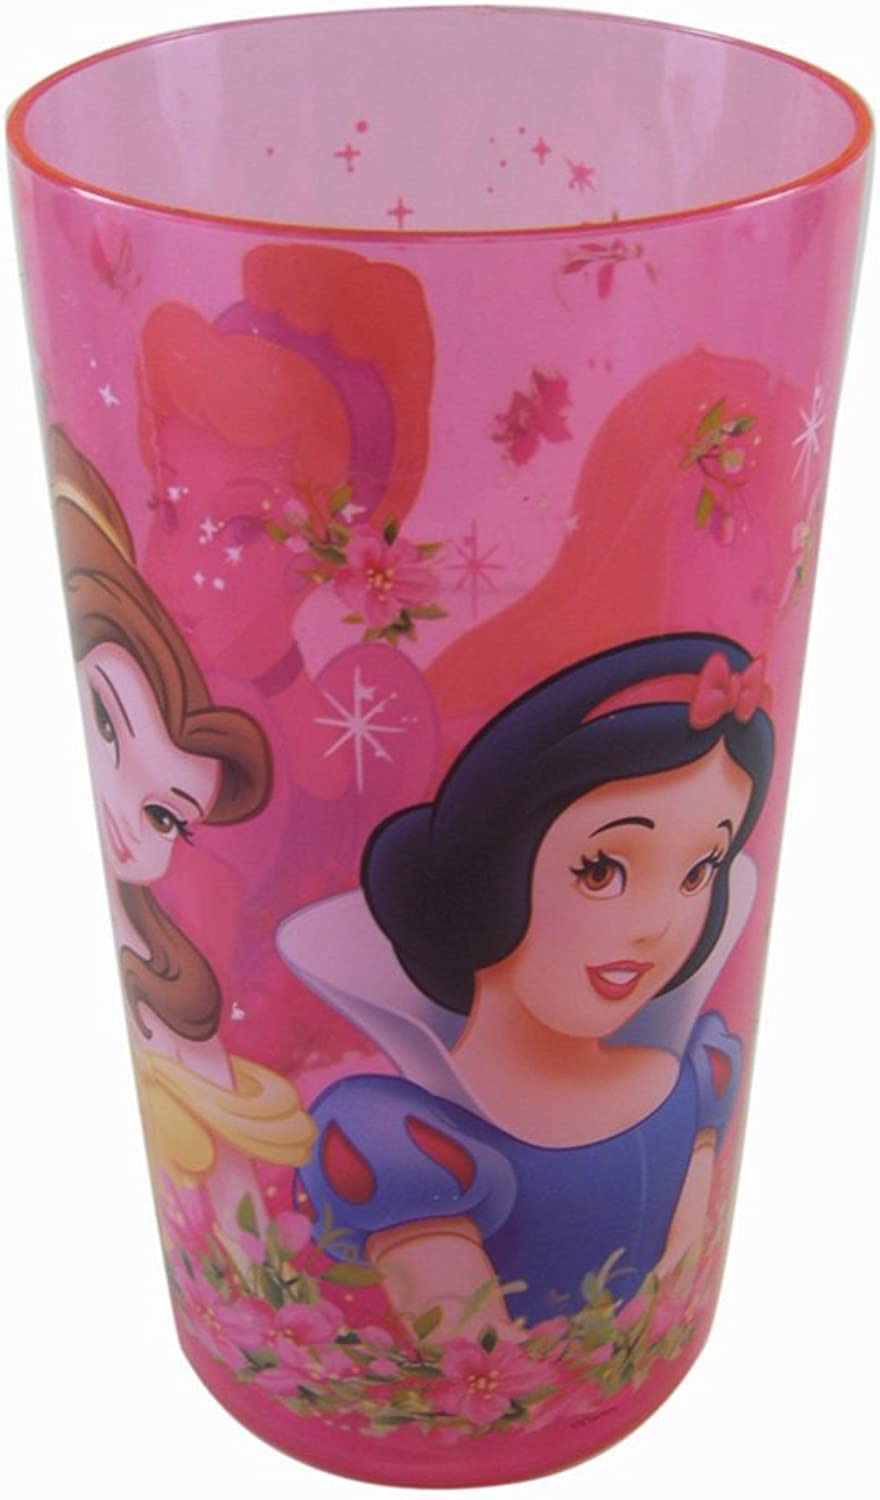 All Princess Drinking Cup  Princess Cup  Pink Princess Cup  Princess Drink...